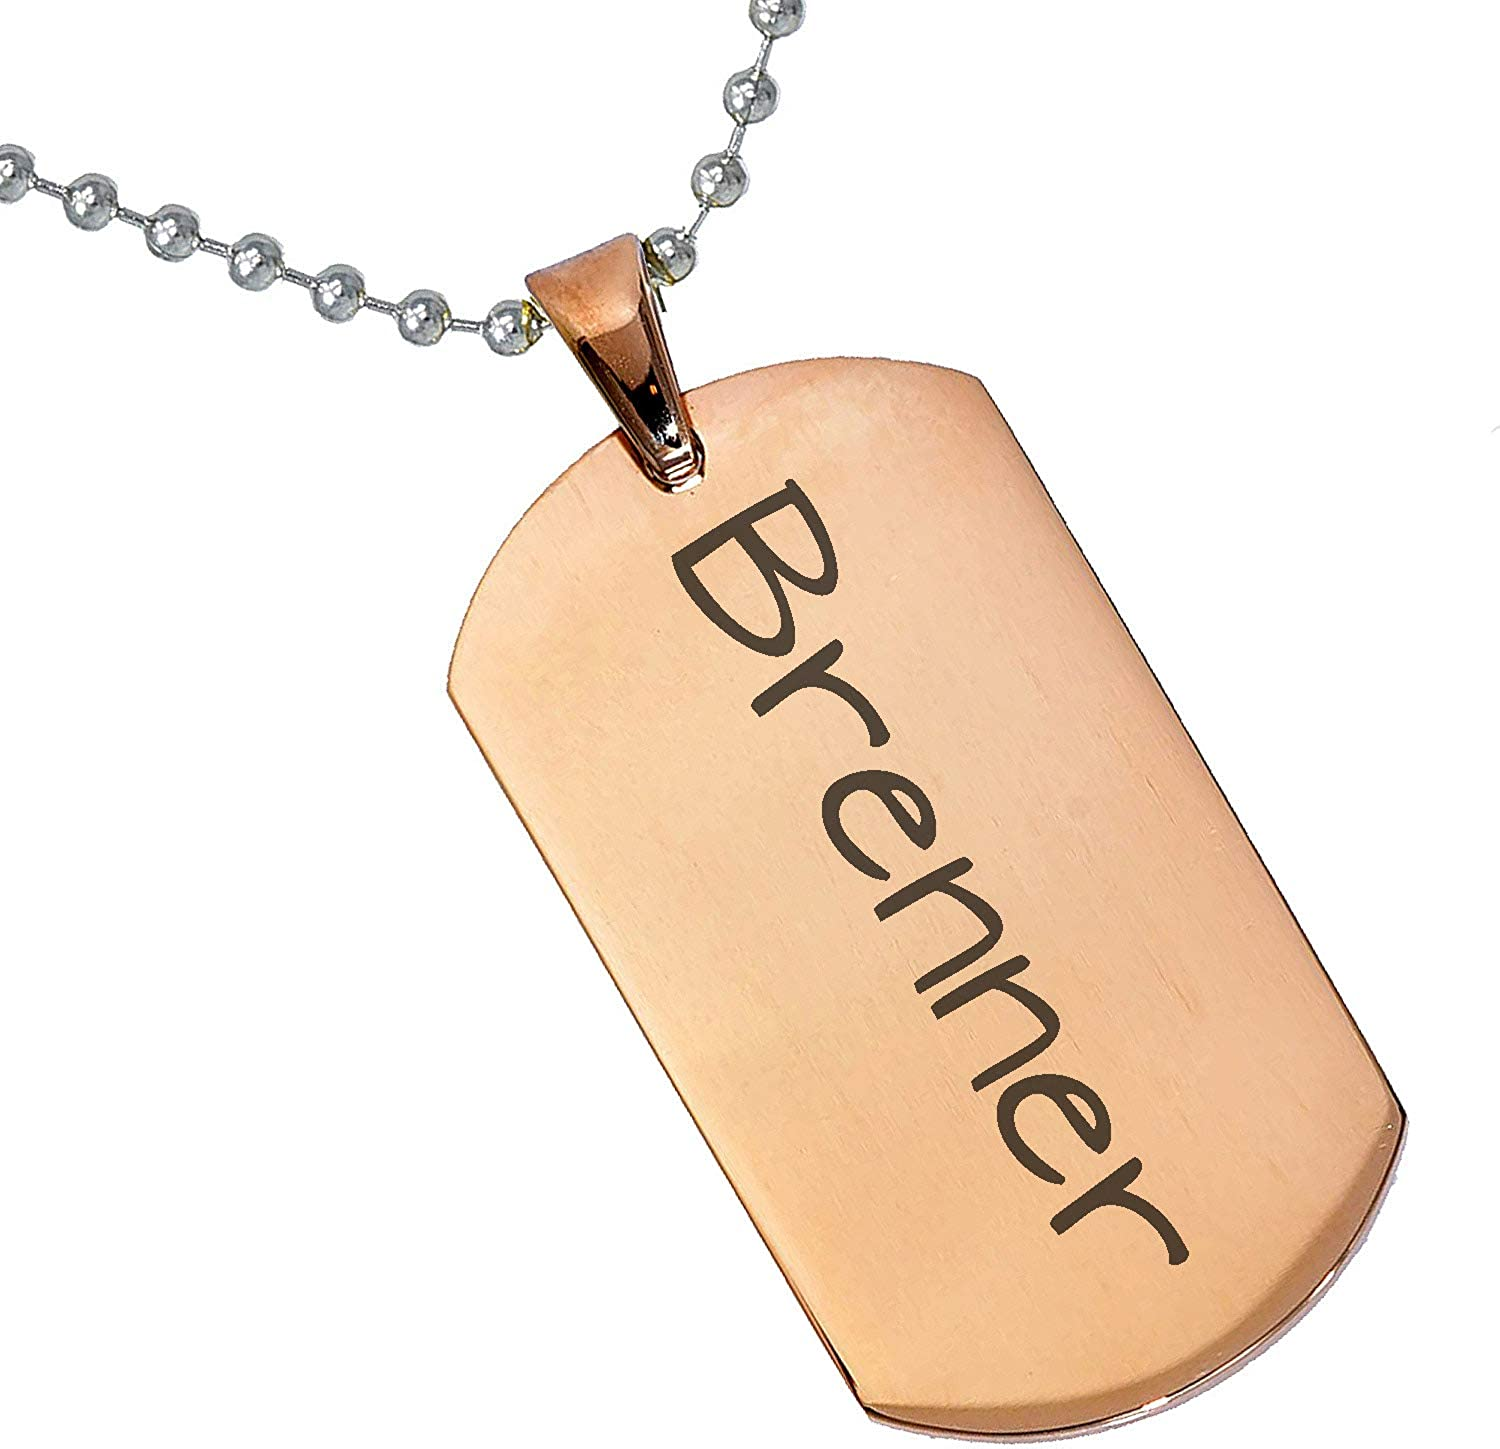 Stainless Steel Silver Gold Black Rose Gold Color Baby Name Brenner Engraved Personalized Gifts For Son Daughter Boyfriend Girlfriend Initial Customizable Pendant Necklace Dog Tags 24 Ball Chain